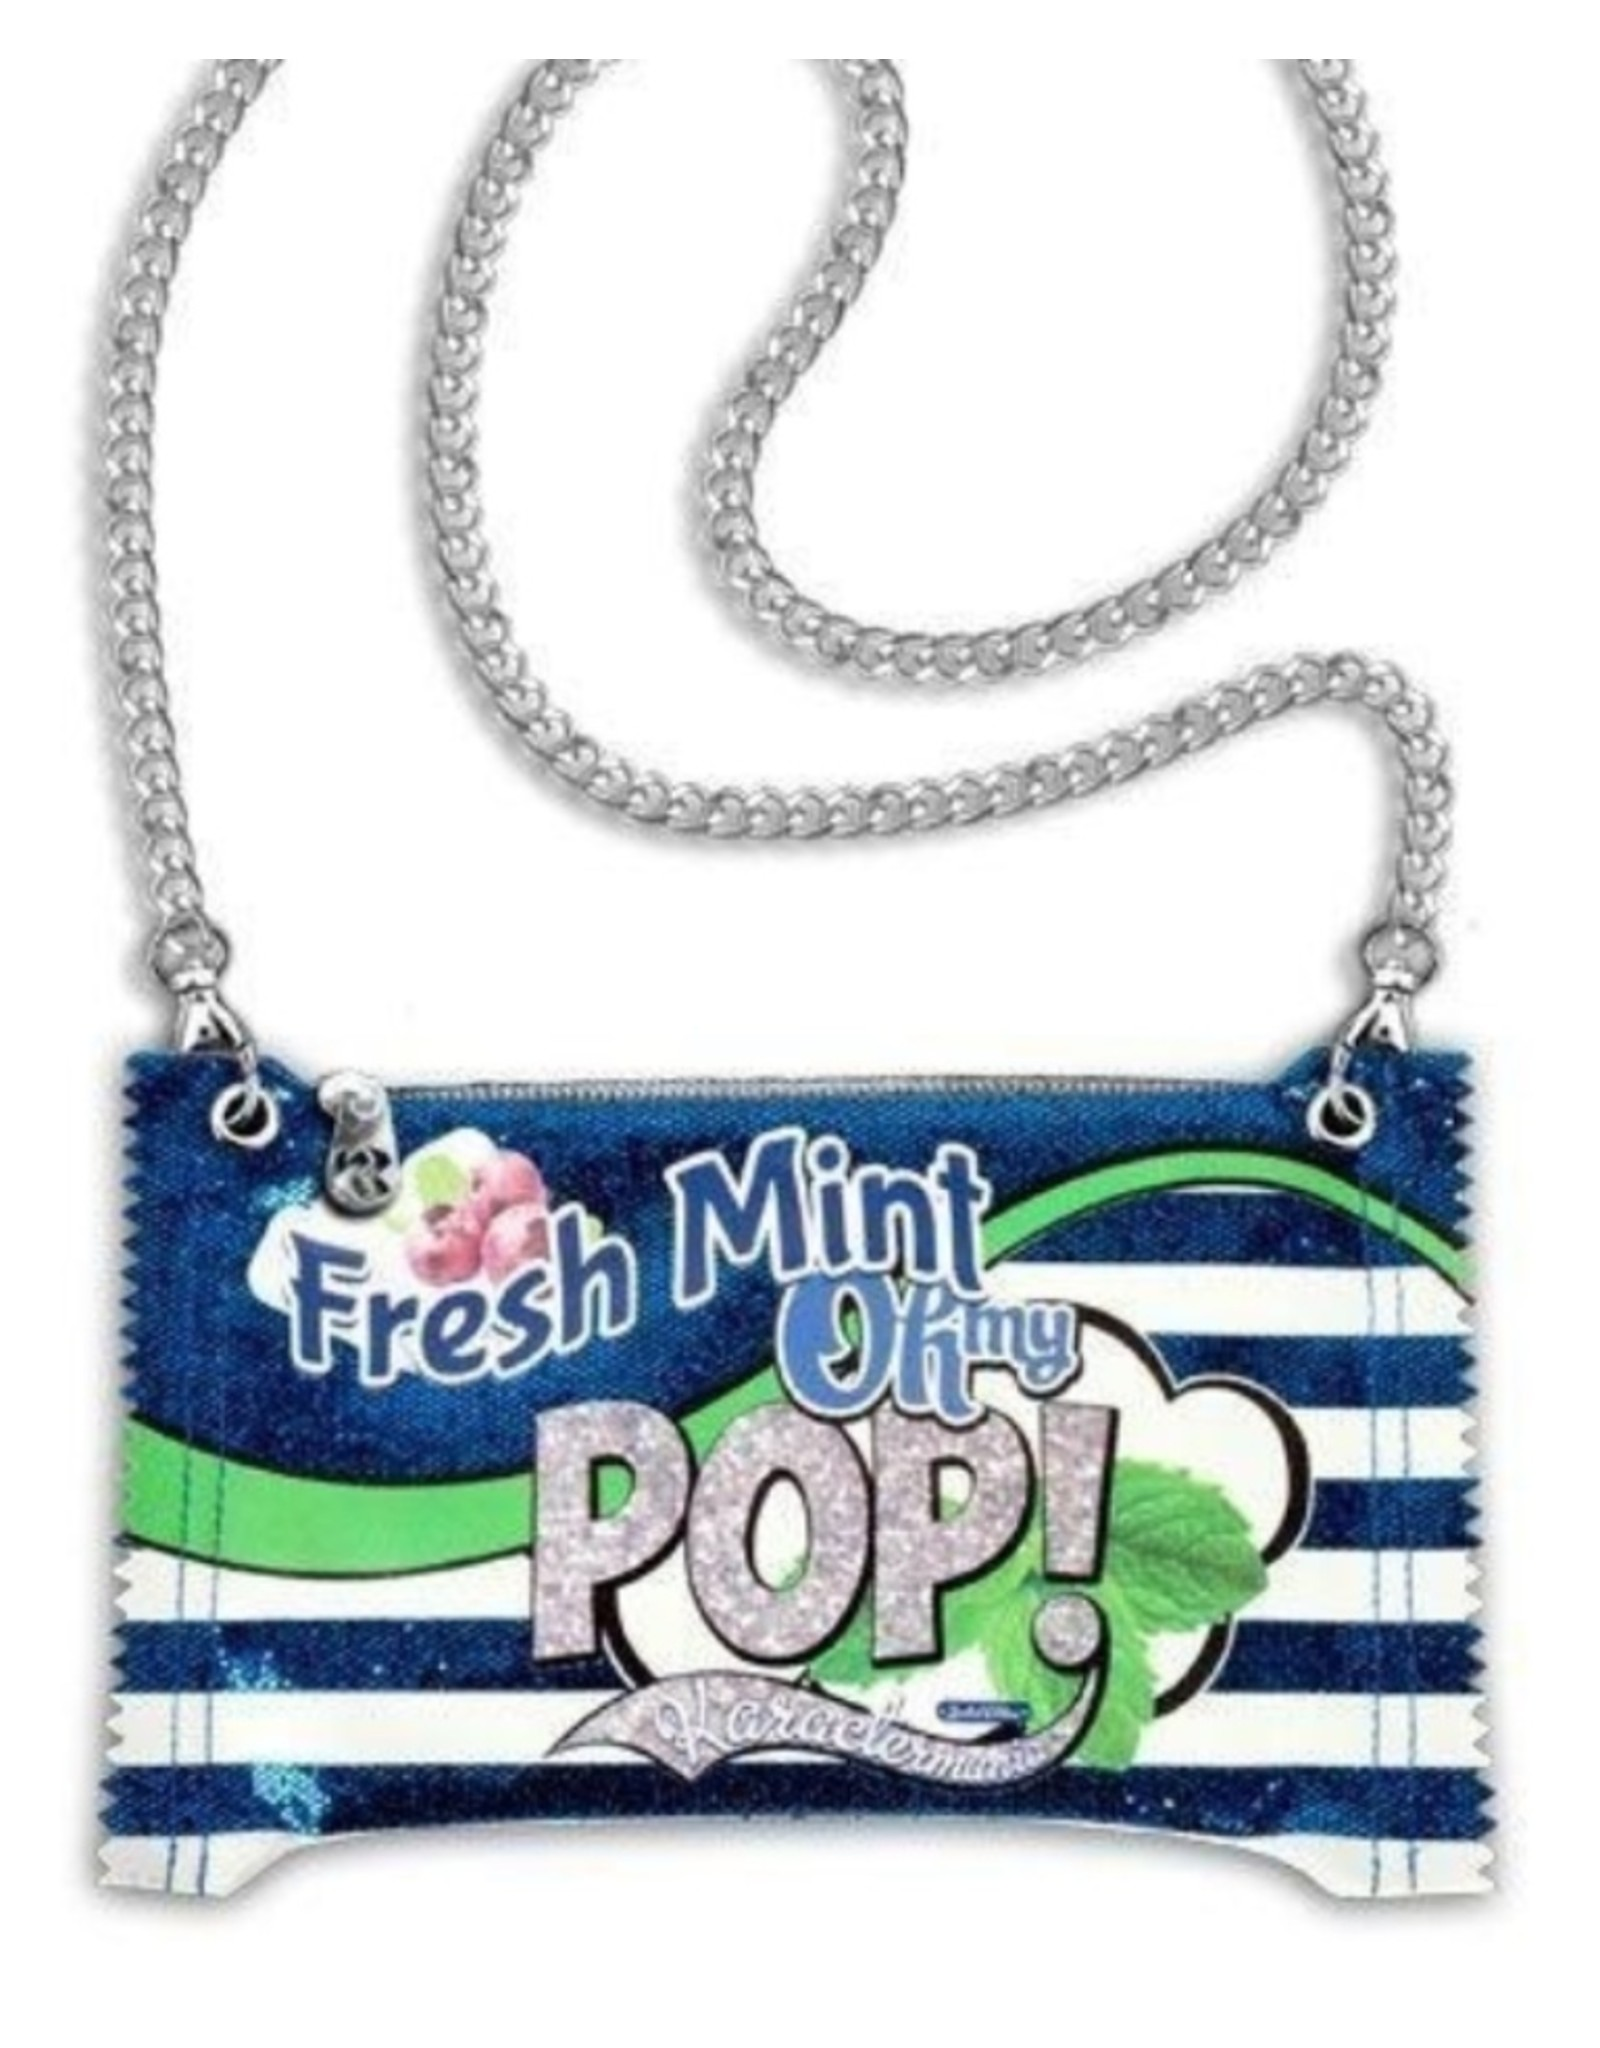 Oh my Pop! Fantasy tassen en portemonnees - Oh My Pop! Fresh Mint Bubblegum schoudertas